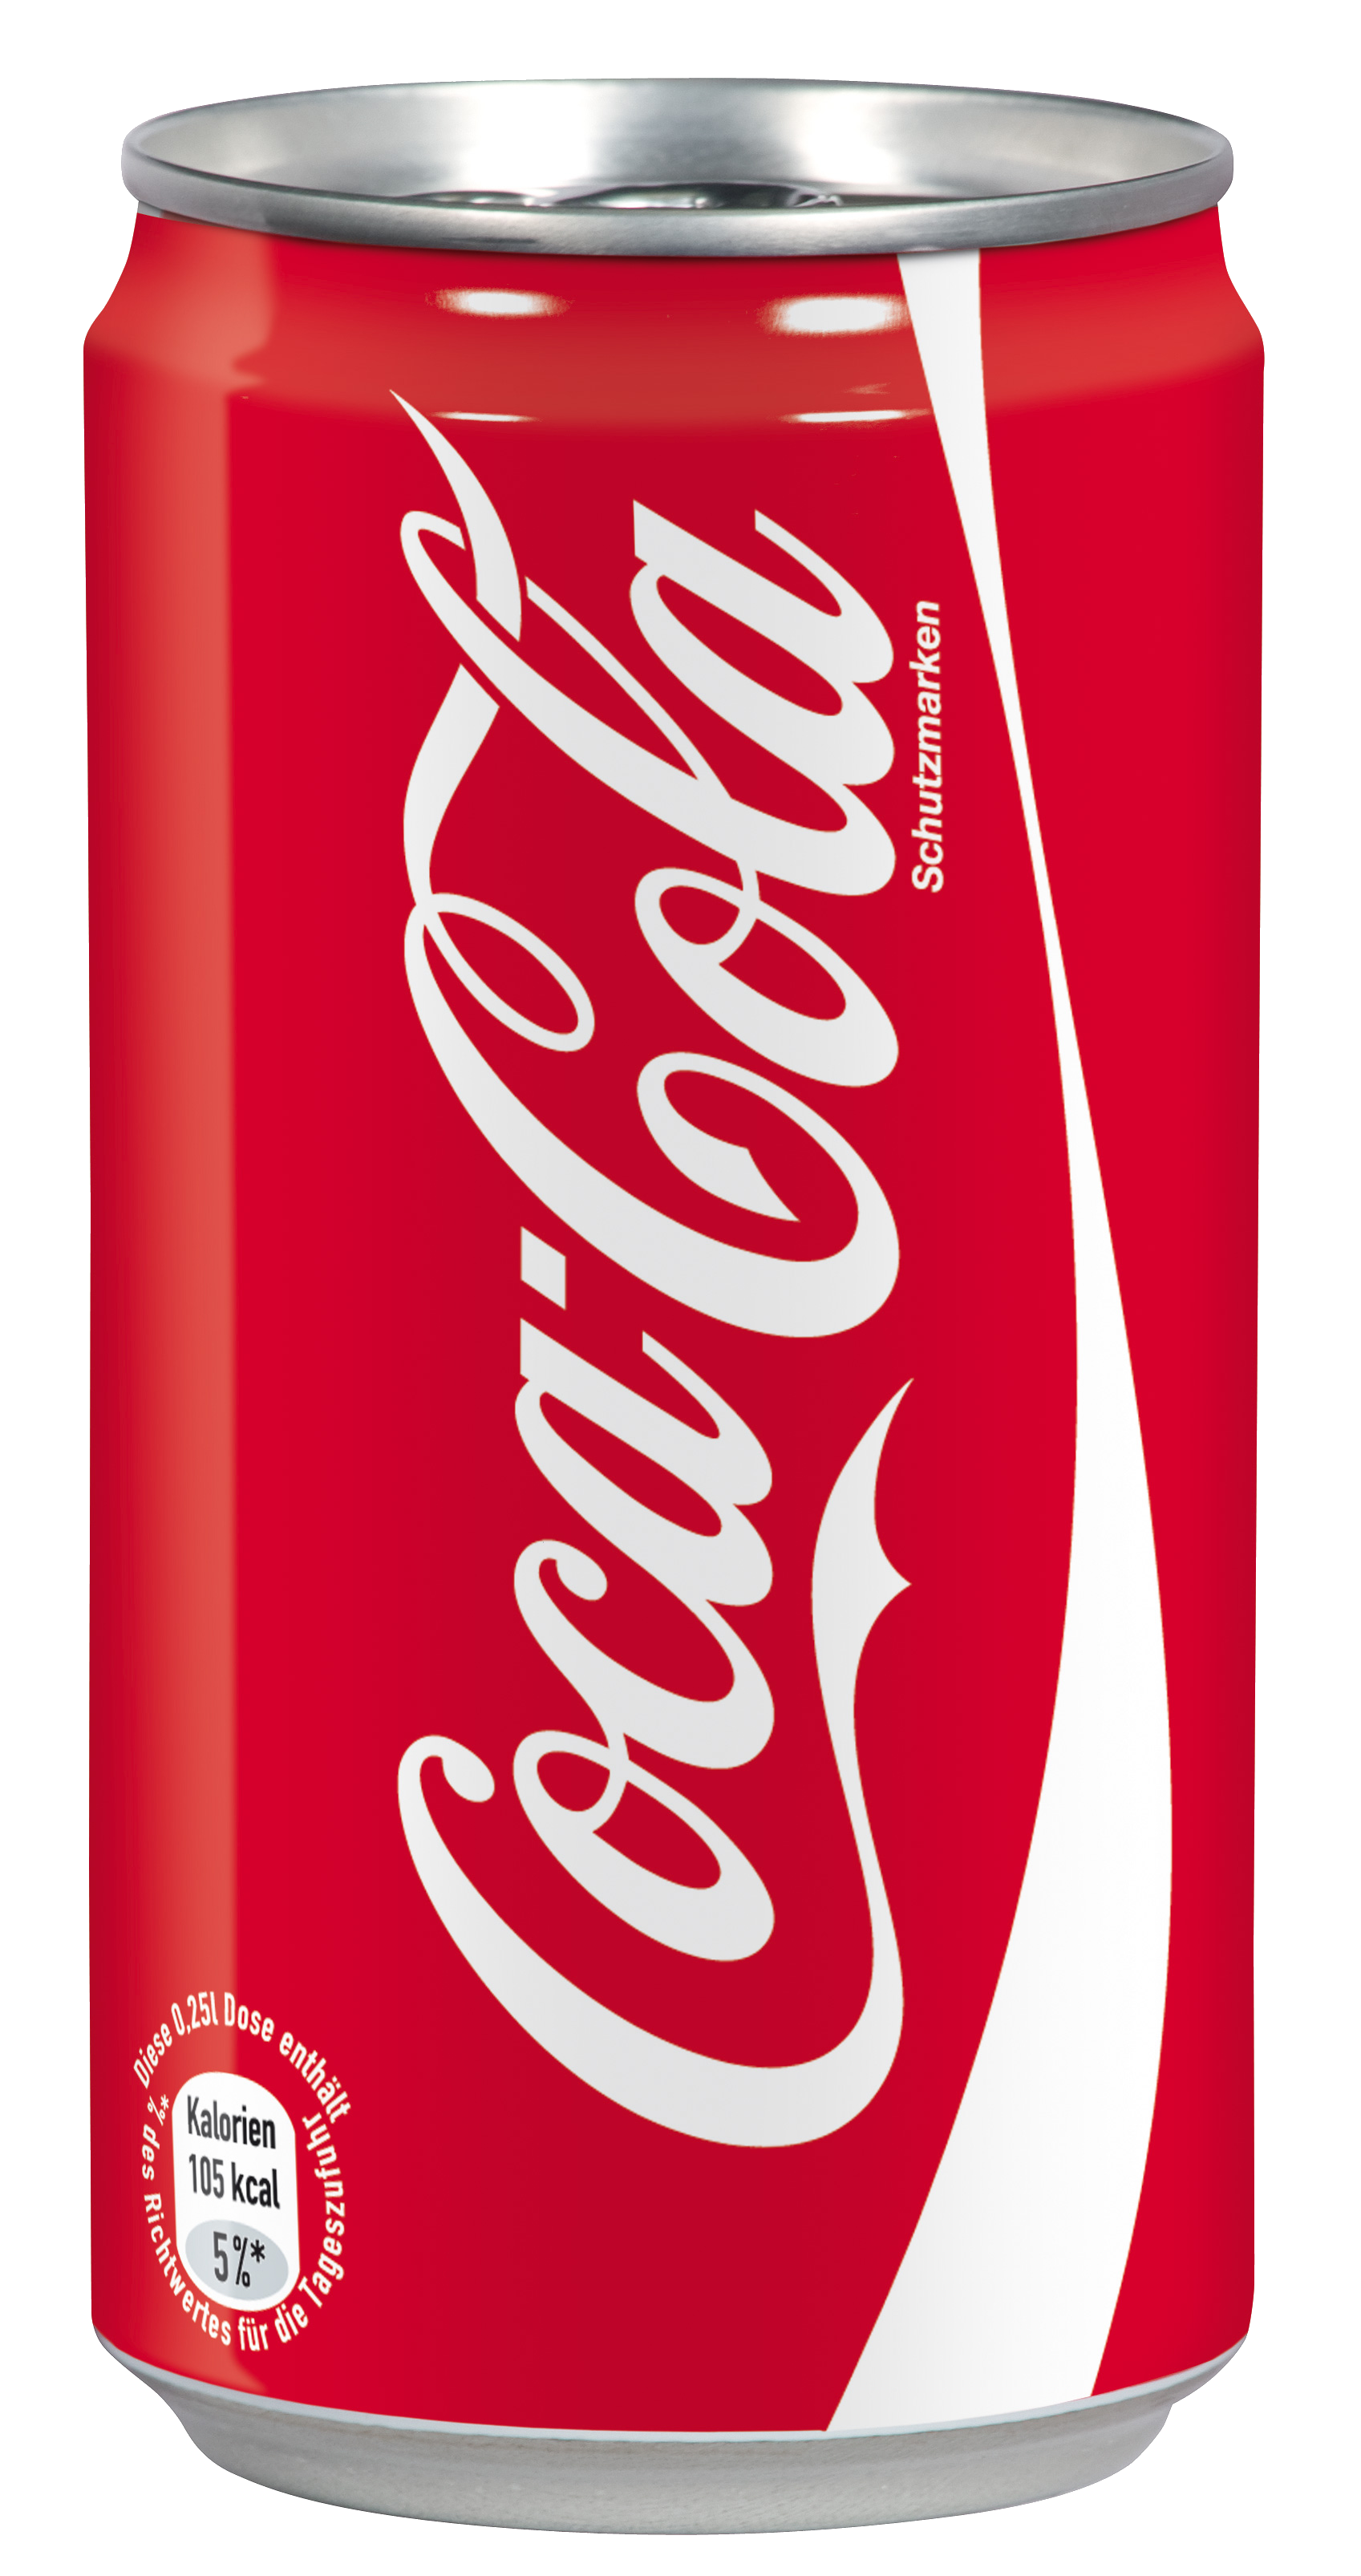 Coca Cola Can PNG Image.